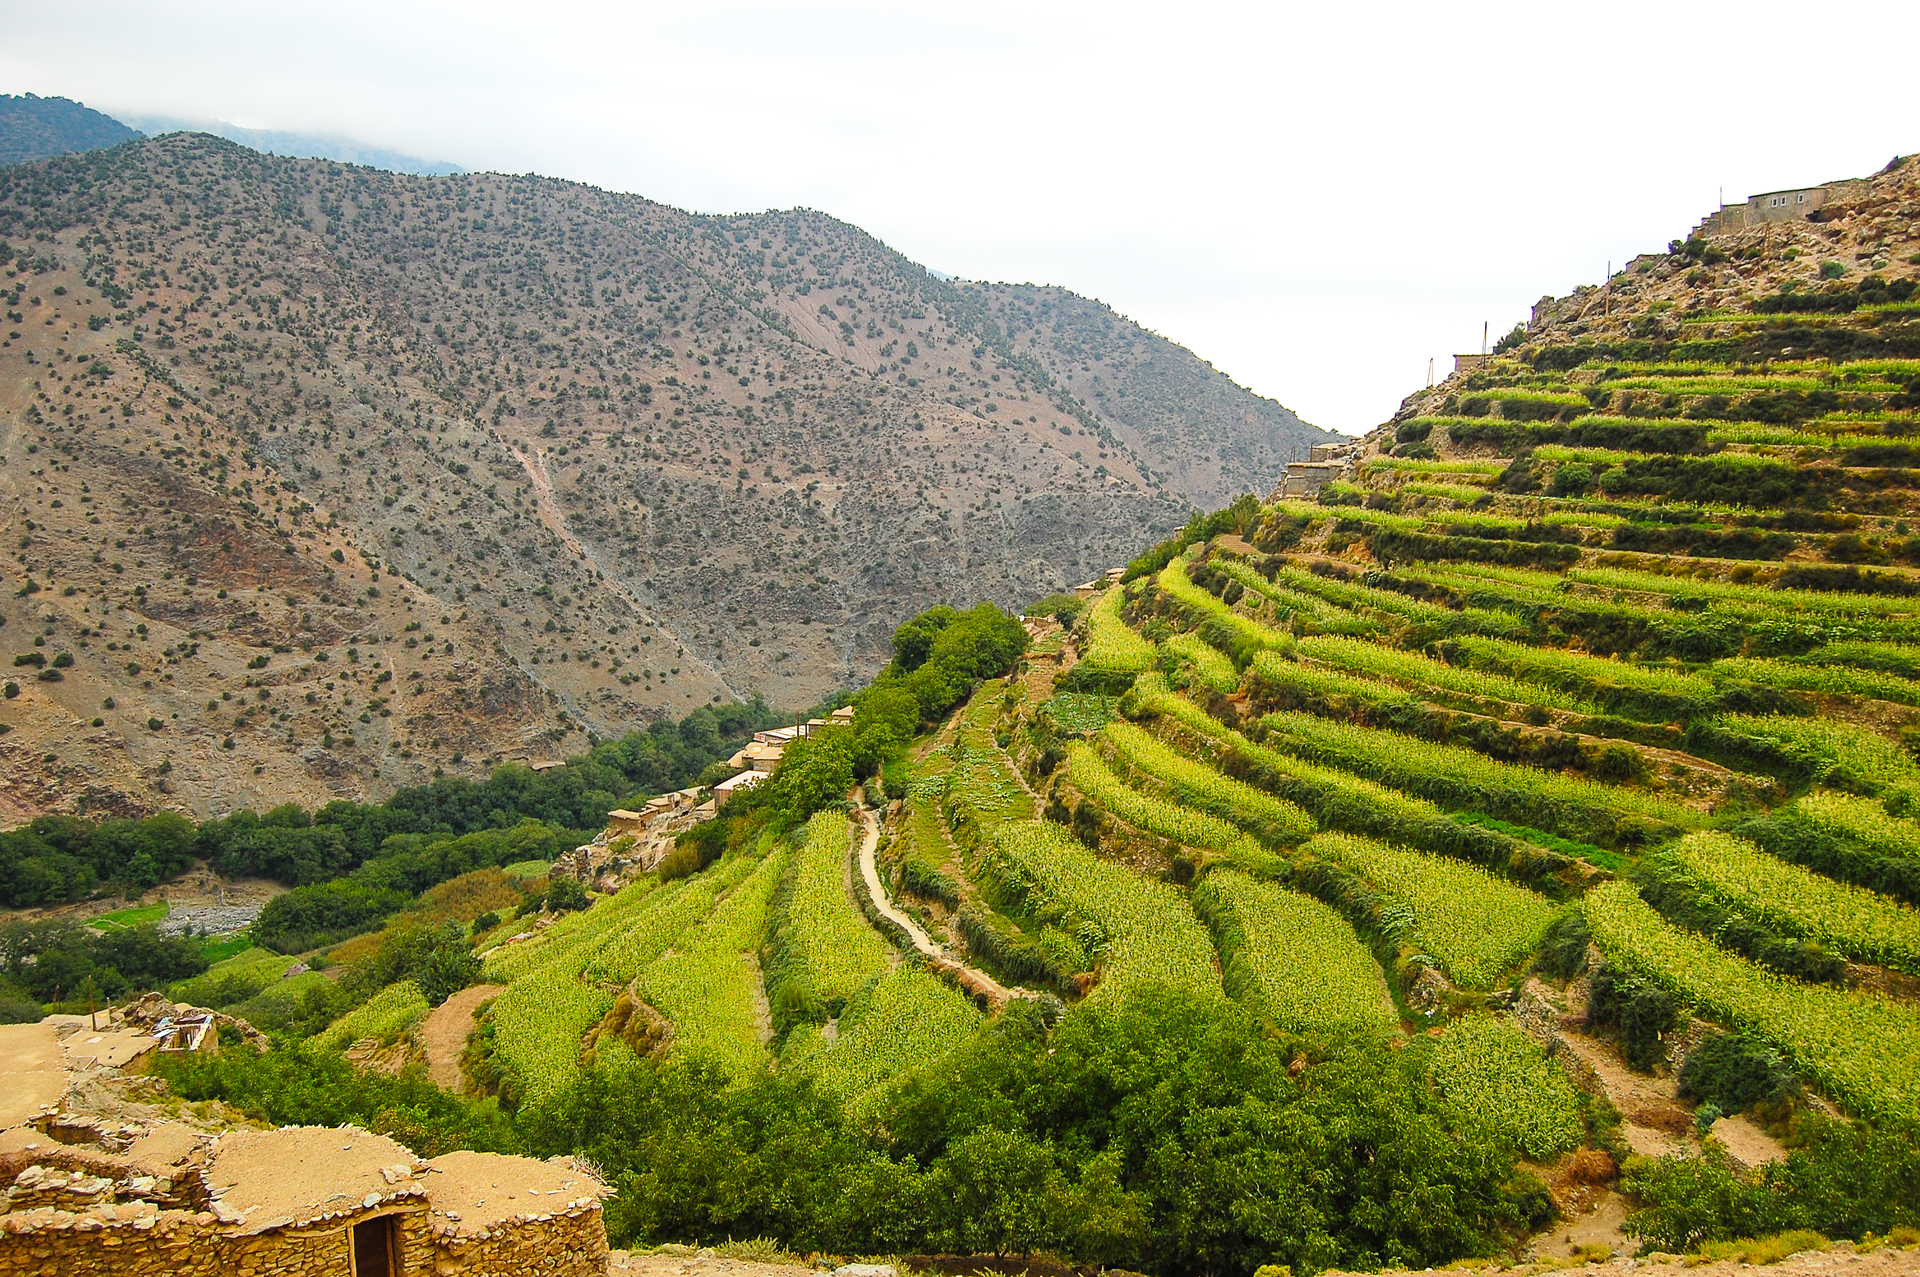 Terrace farming in morocco landscape during for Terrace cultivation